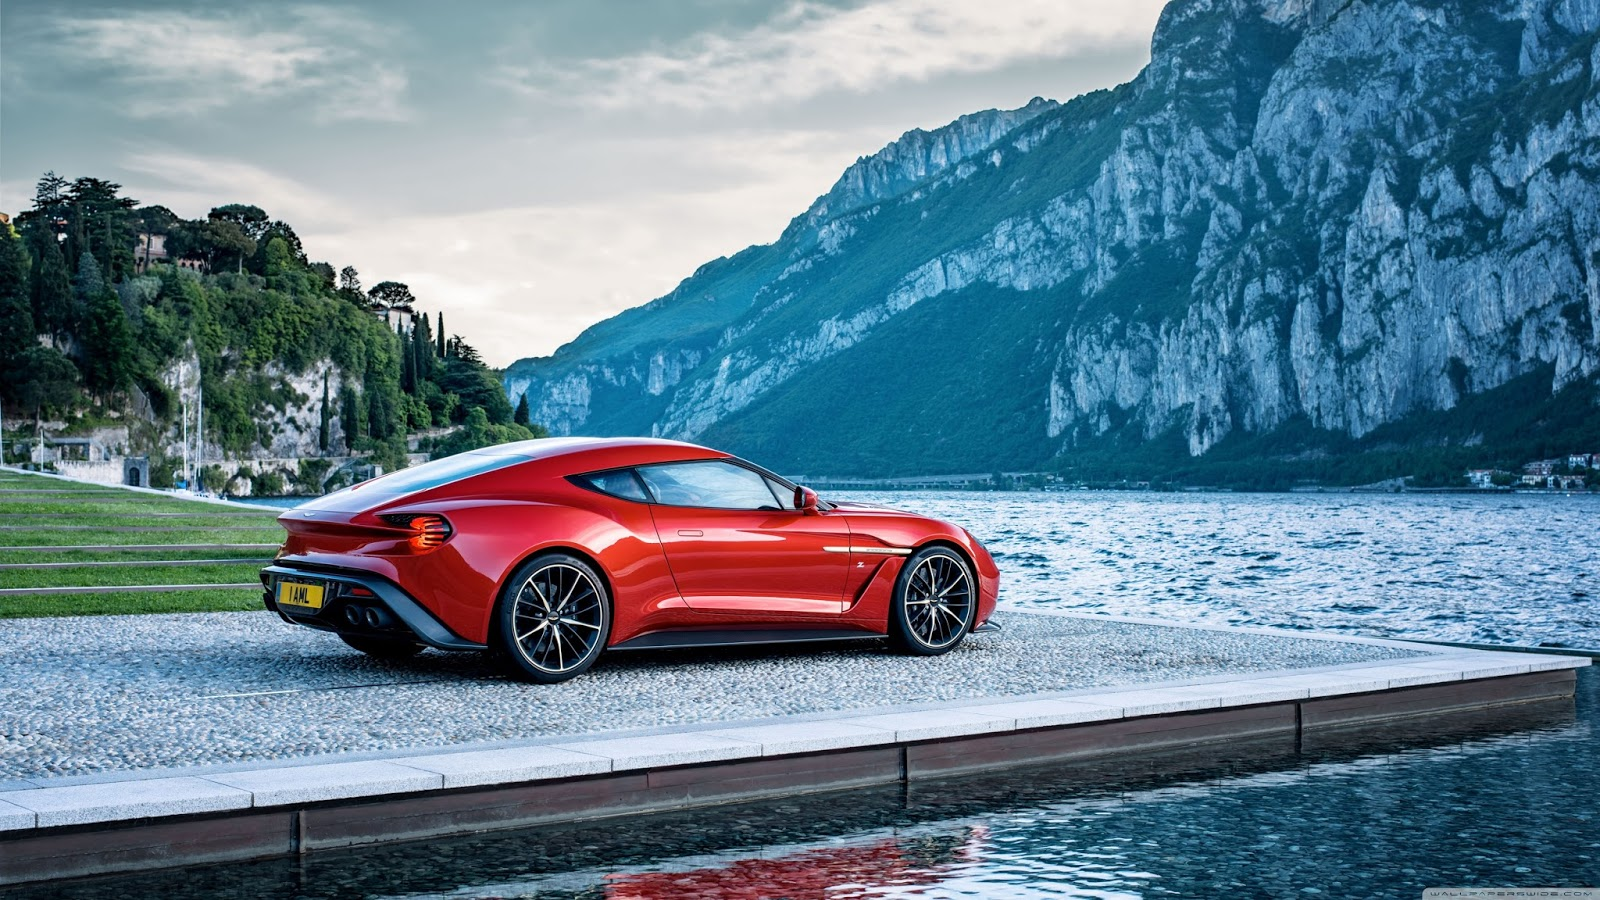 Aston Martin Sports Car Red   Wallpaper